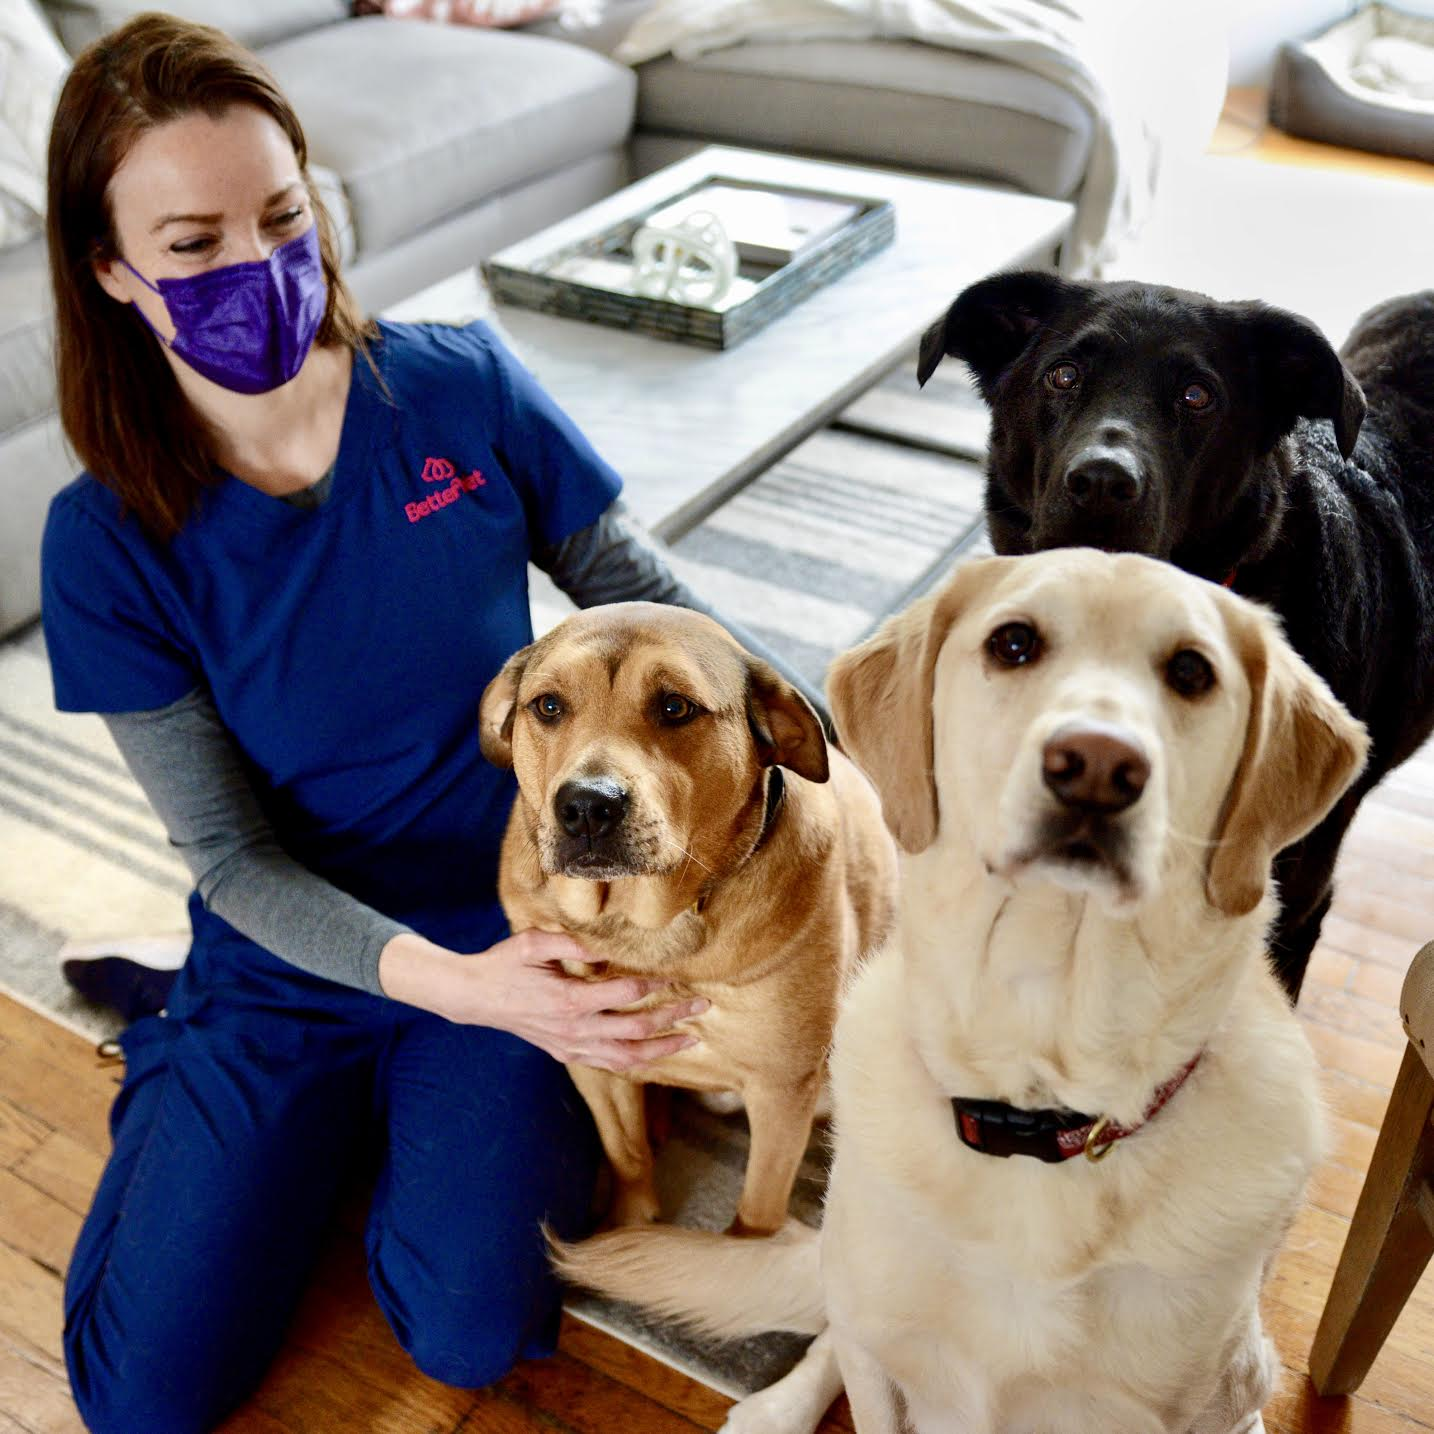 Three dogs and veterinarian image.